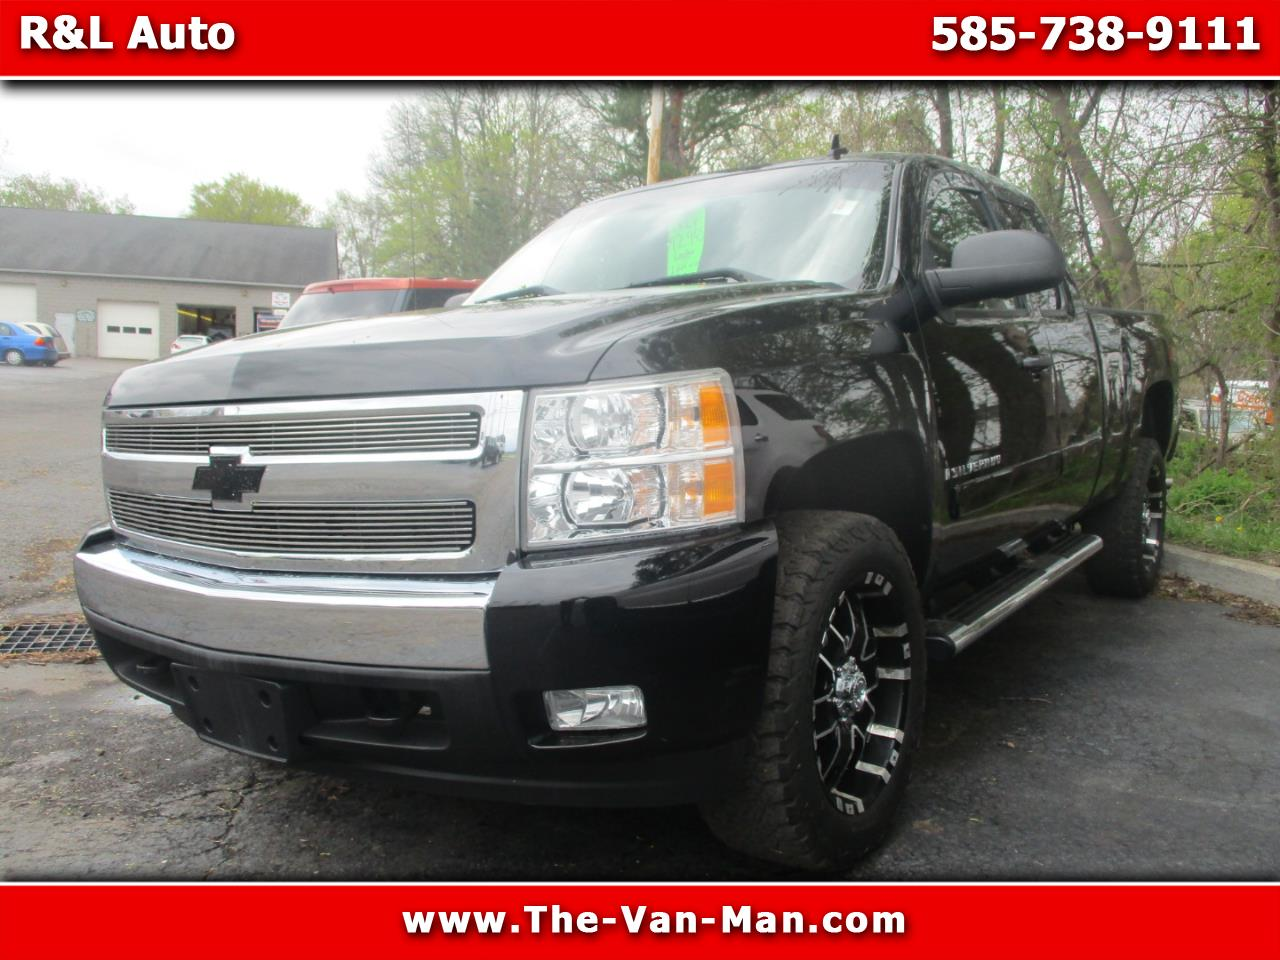 2008 Chevrolet Silverado 1500 LT Short Box 4WD